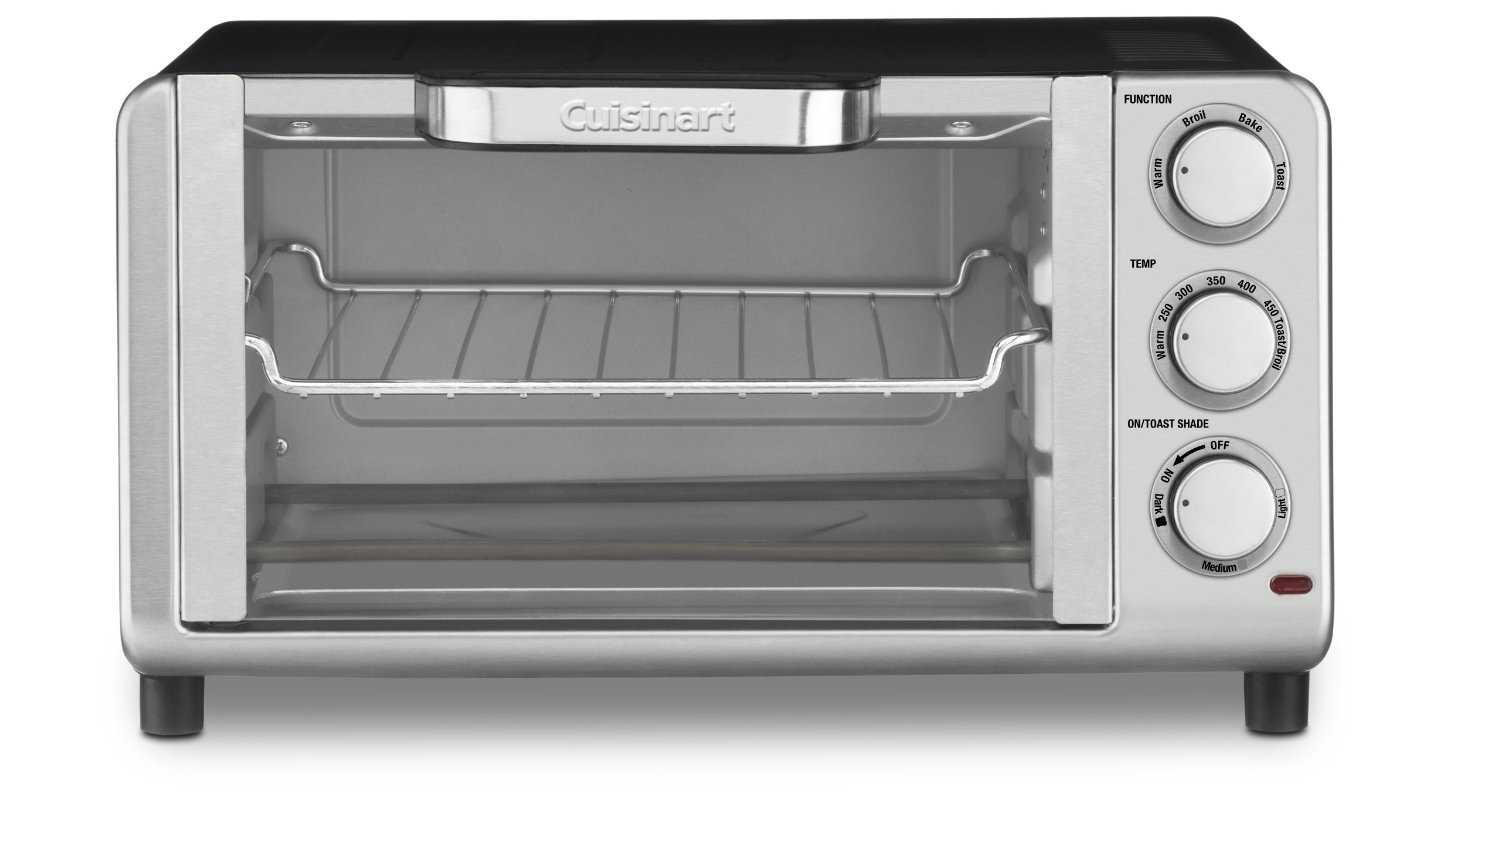 Cuisinart Stainless Steel Compact Toaster Oven Broiler with 4 Browning Levels